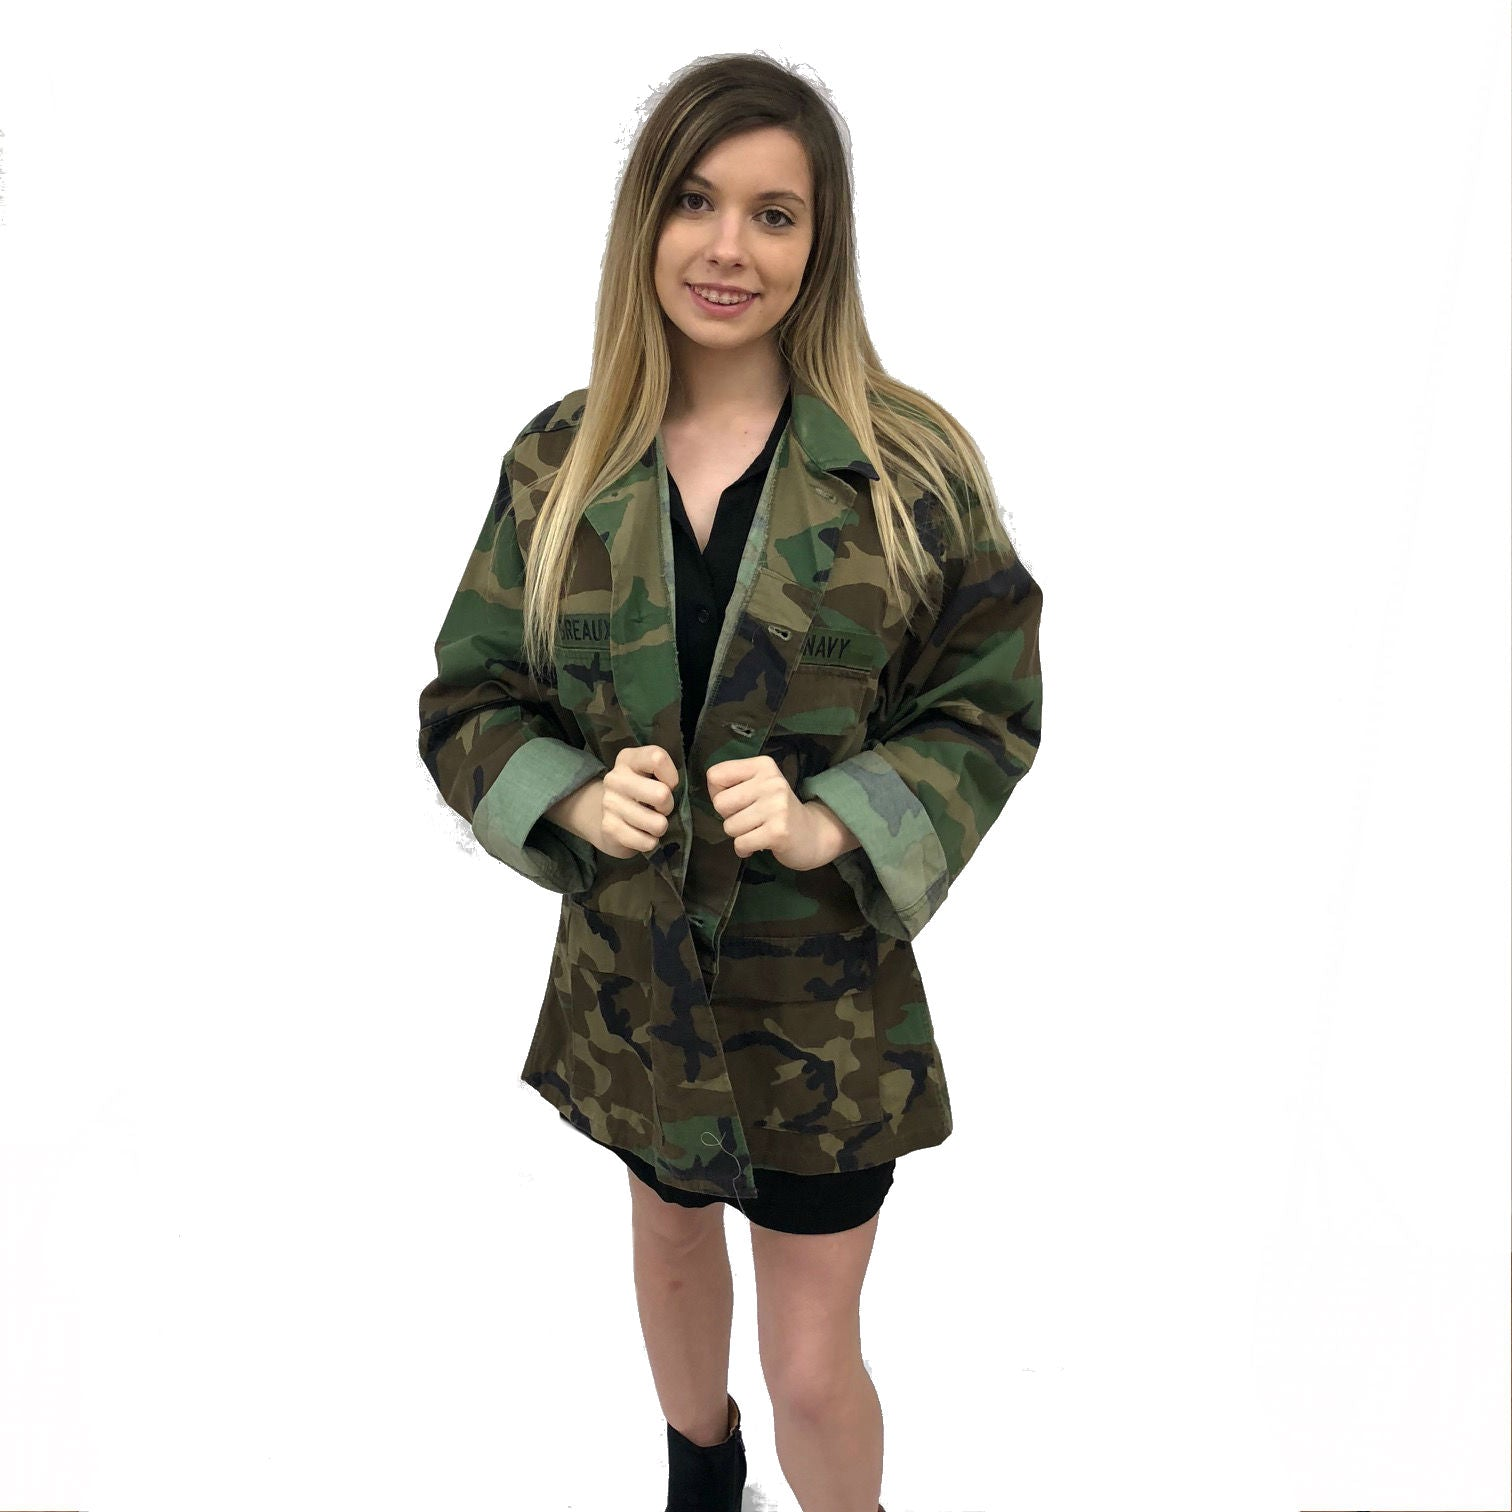 camo jacket dolly pardon country music vintage rock band grunge street wear coat sequin